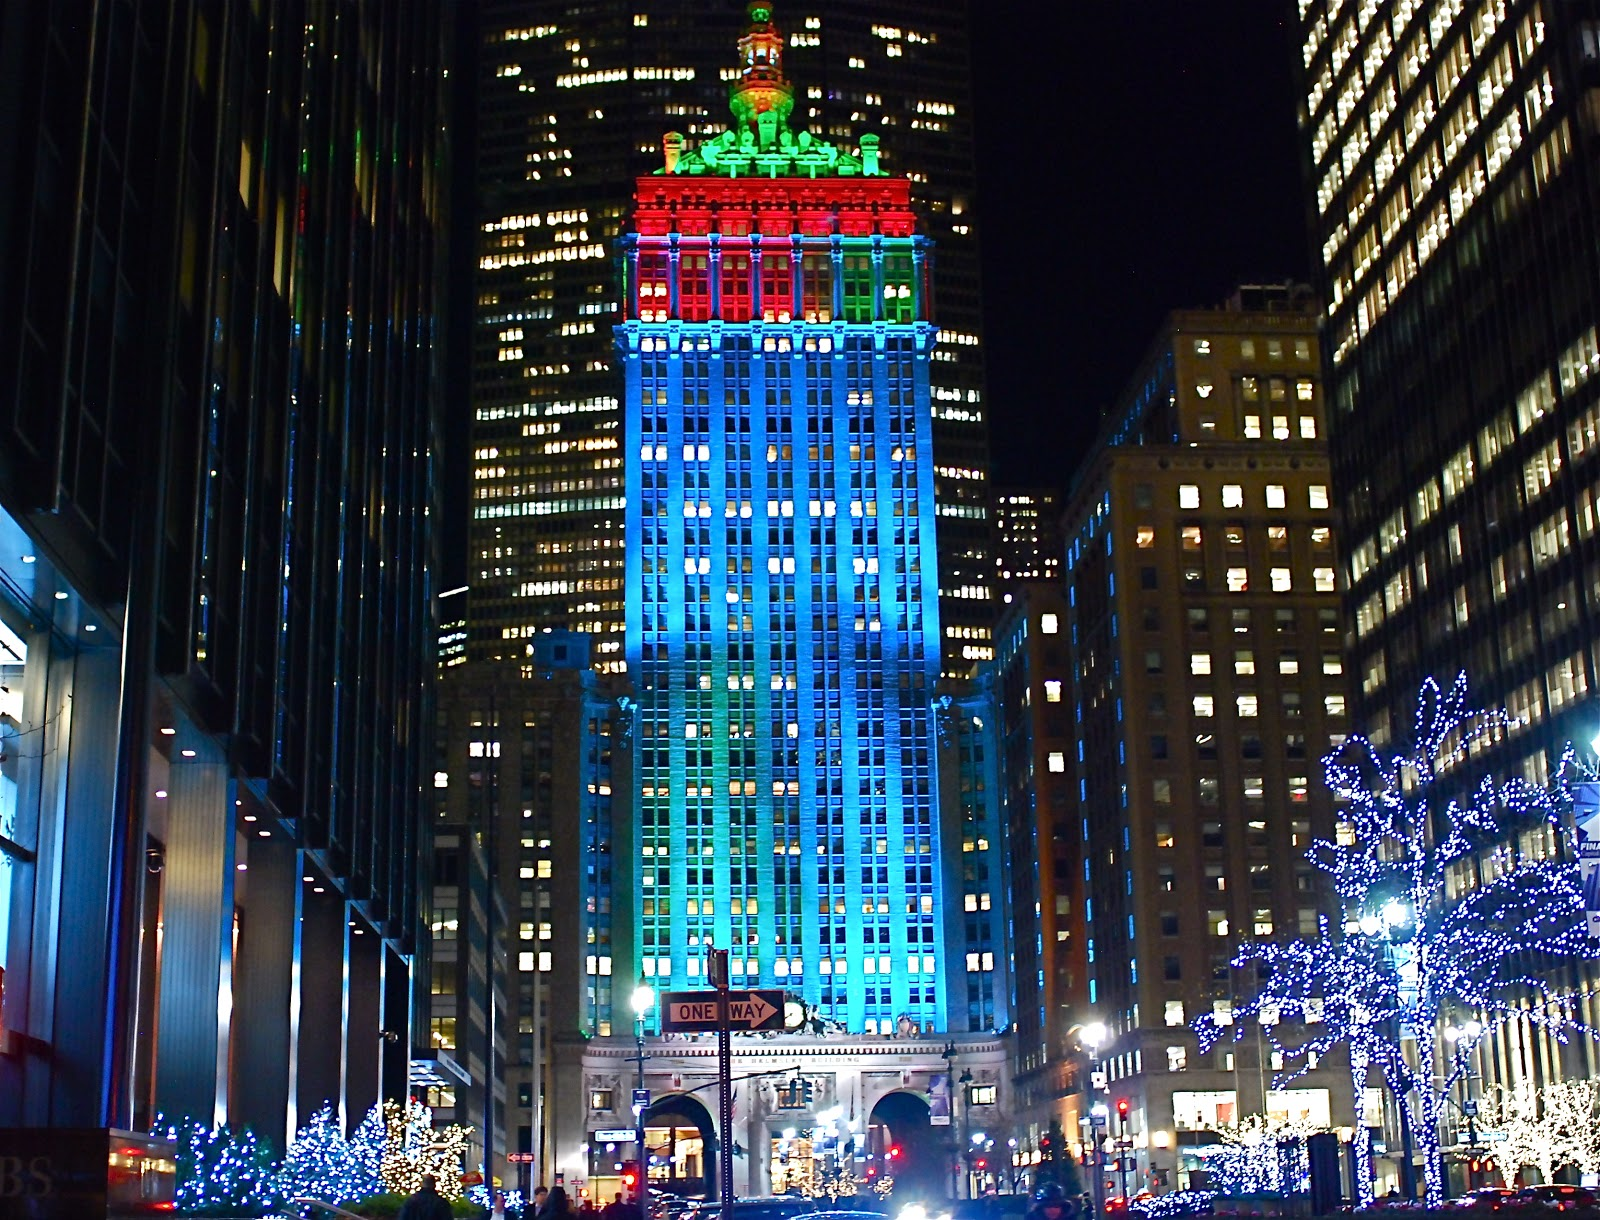 Exterior: NYC ♥ NYC: The Helmsley Building Makeover